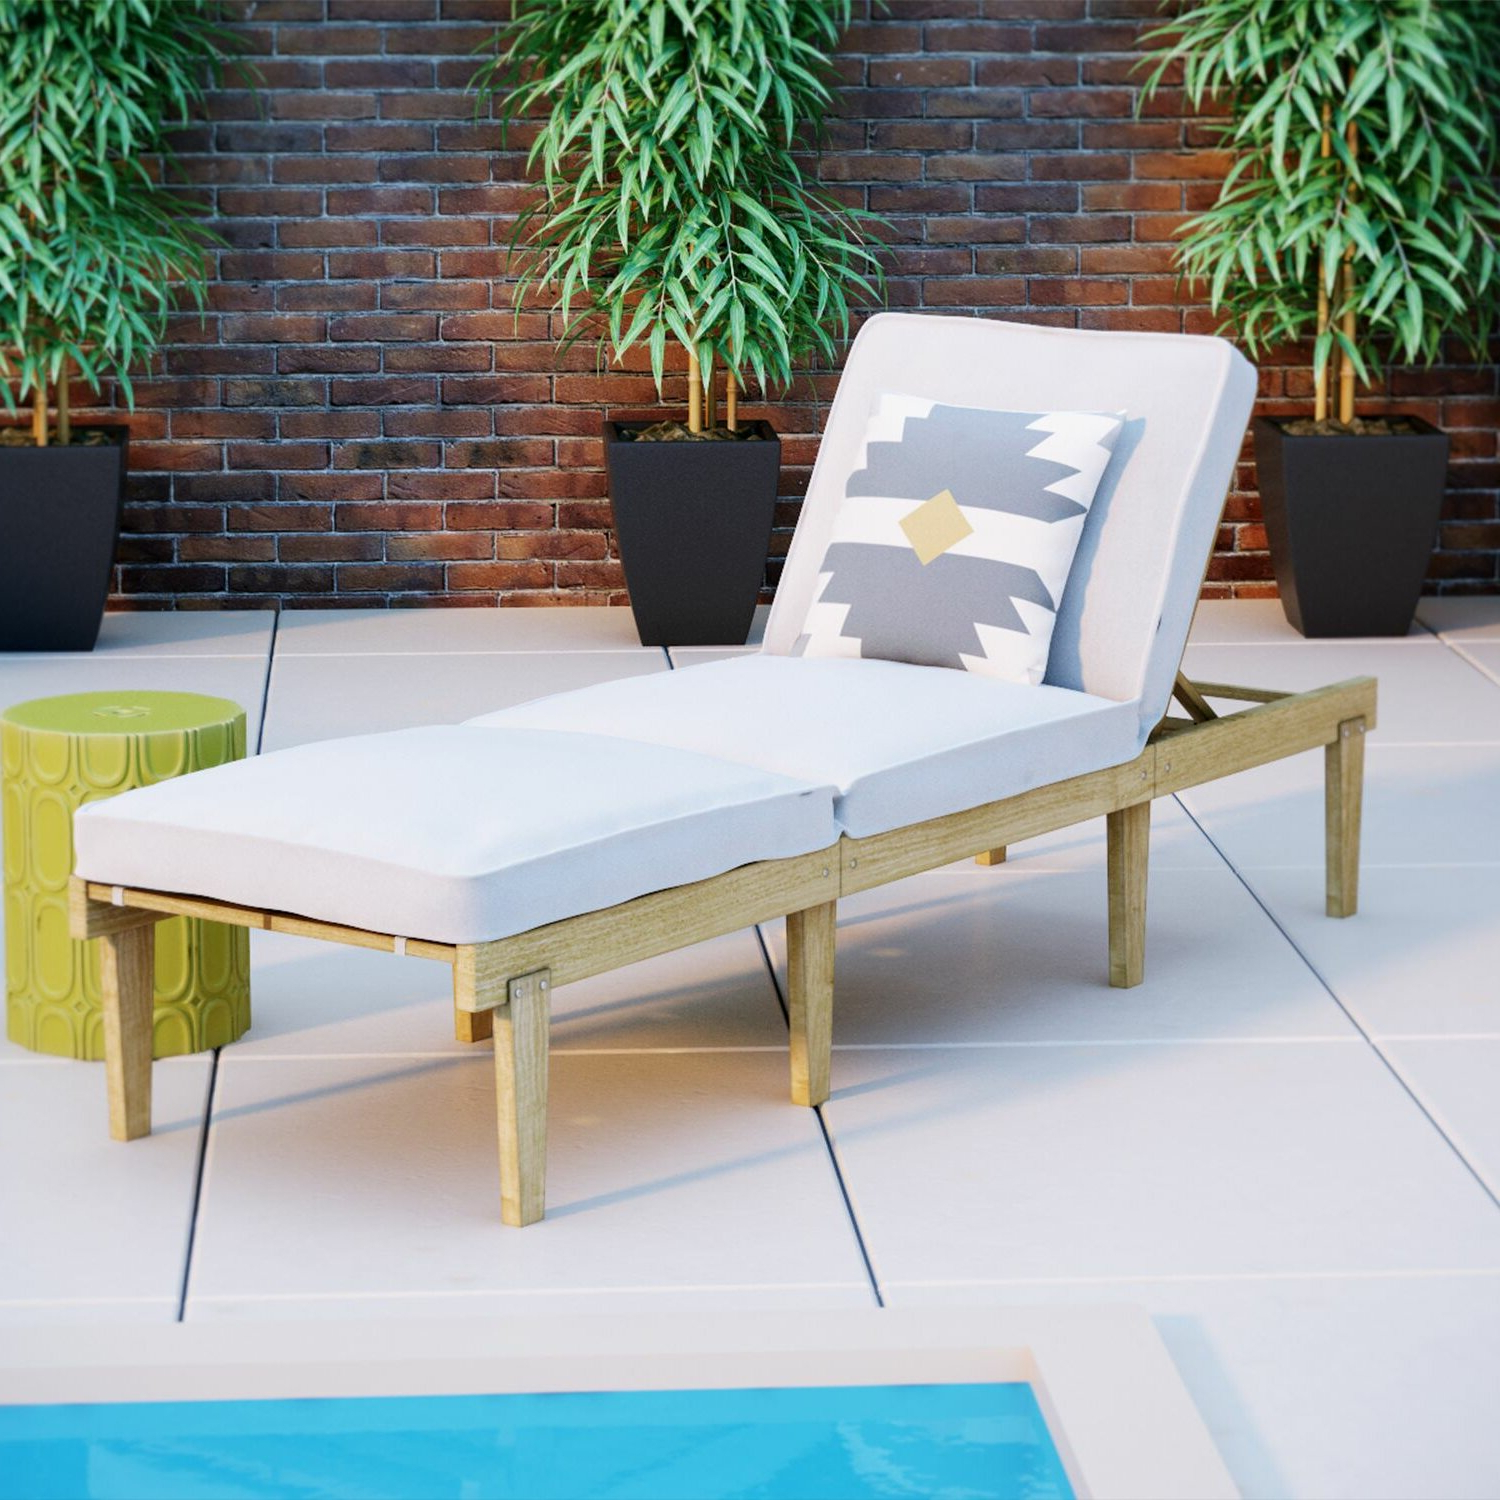 Ardsley Reclining Teak Chaise Lounge With Cushion For Recent Outdoor Acacia Wood Chaise Lounges With Cushion (View 18 of 25)